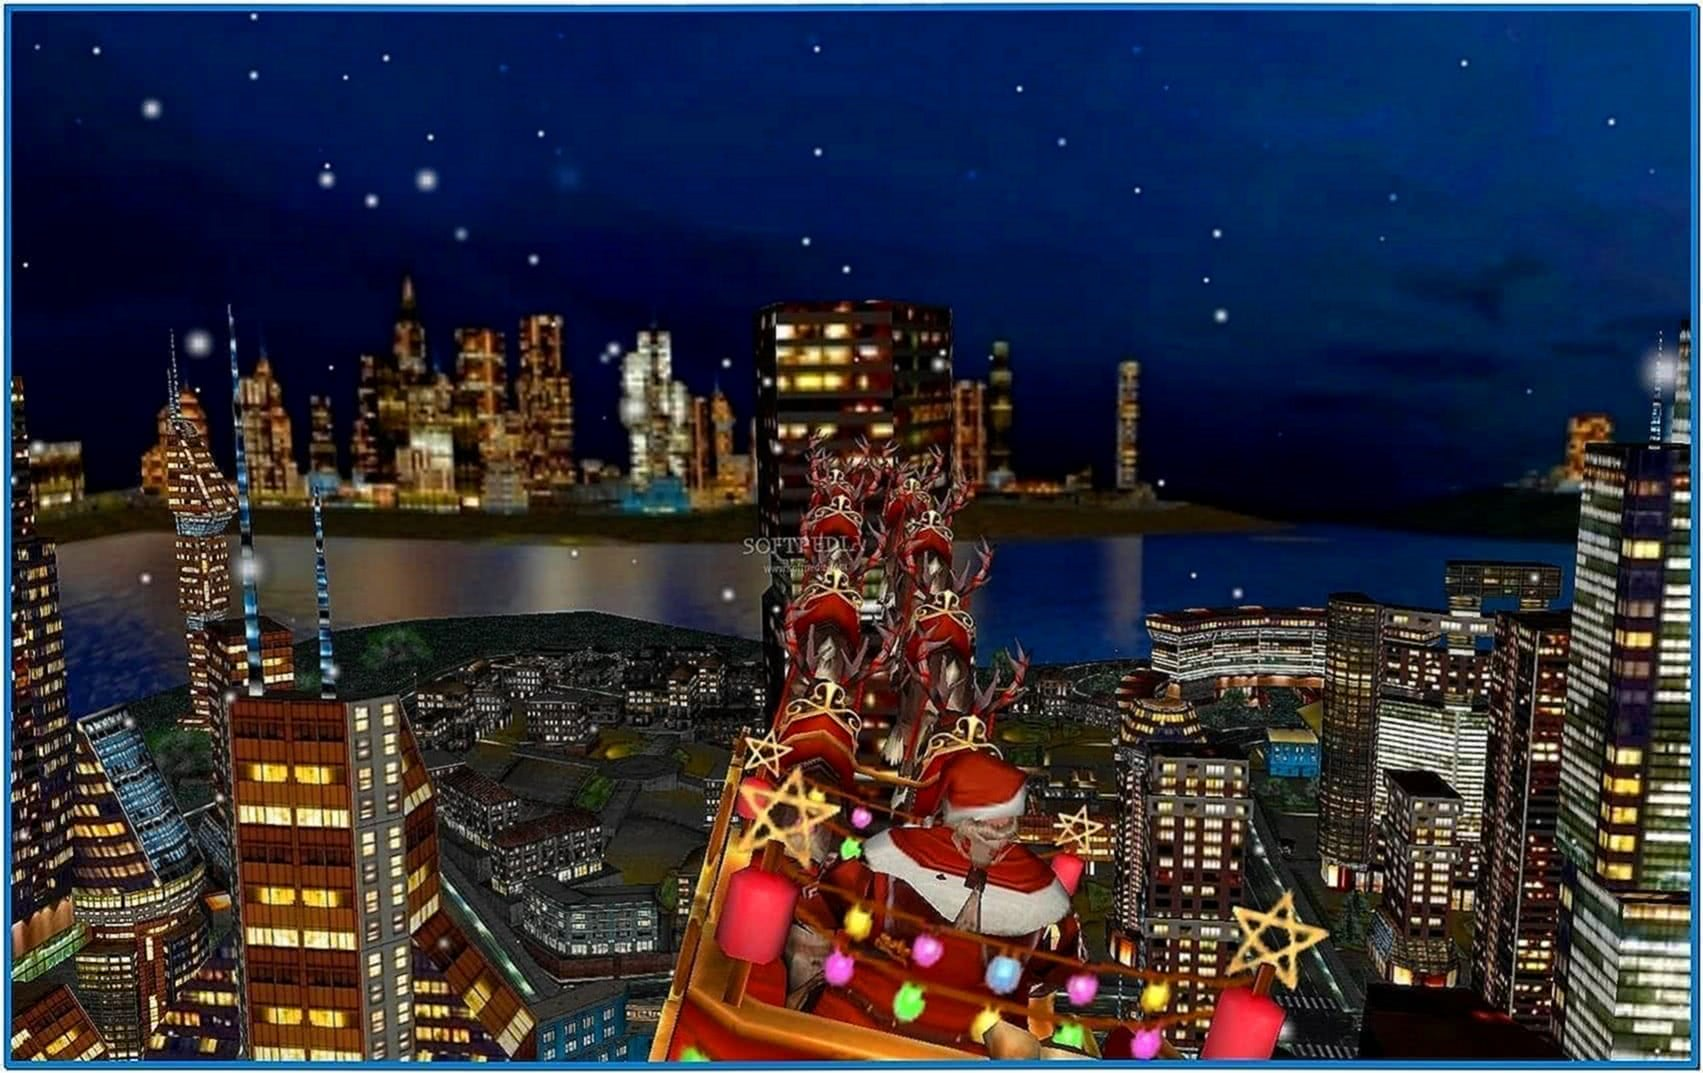 Christmas in the city screensaver animated